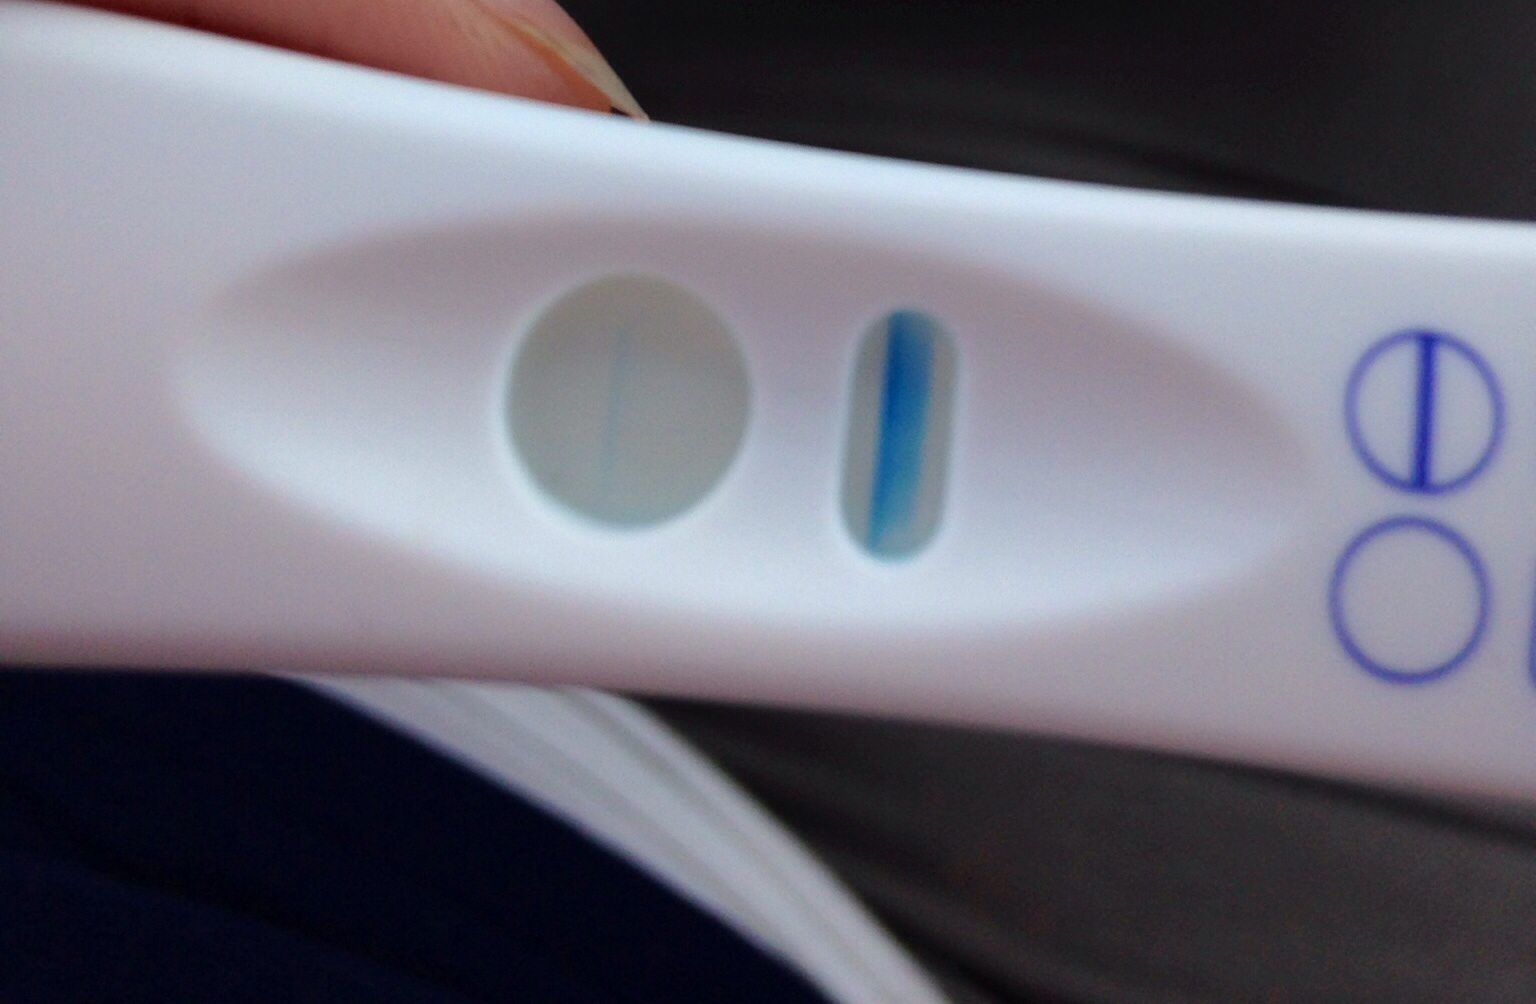 Im 8 wks pregnant and my Rubella IGG test was positive